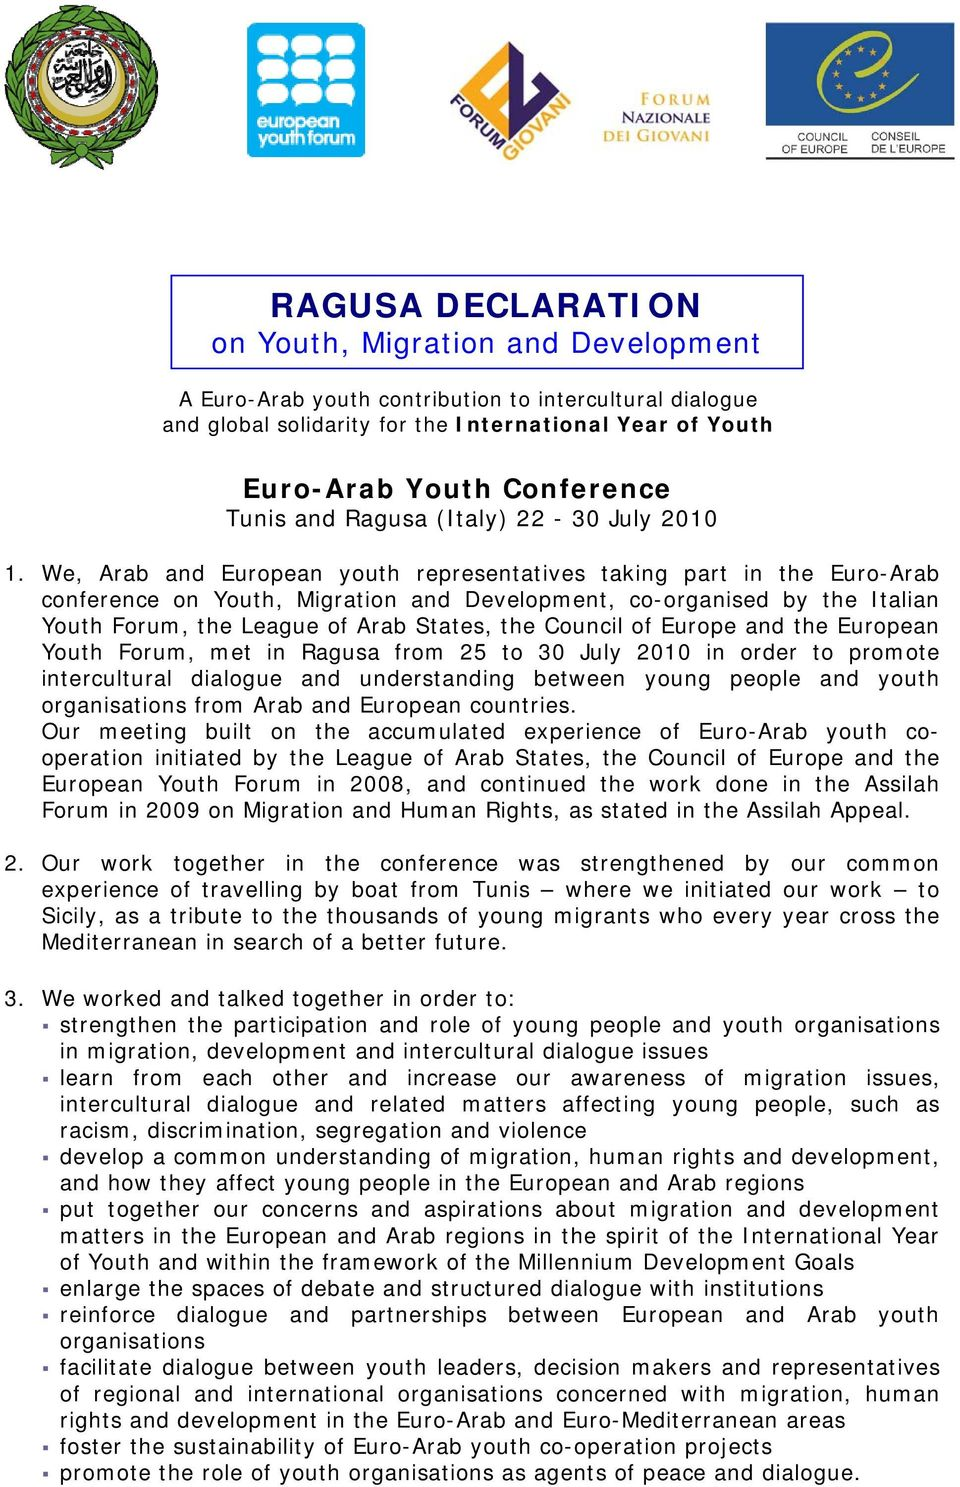 We, Arab and European youth representatives taking part in the Euro-Arab conference on Youth, Migration and Development, co-organised by the Italian Youth Forum, the League of Arab States, the